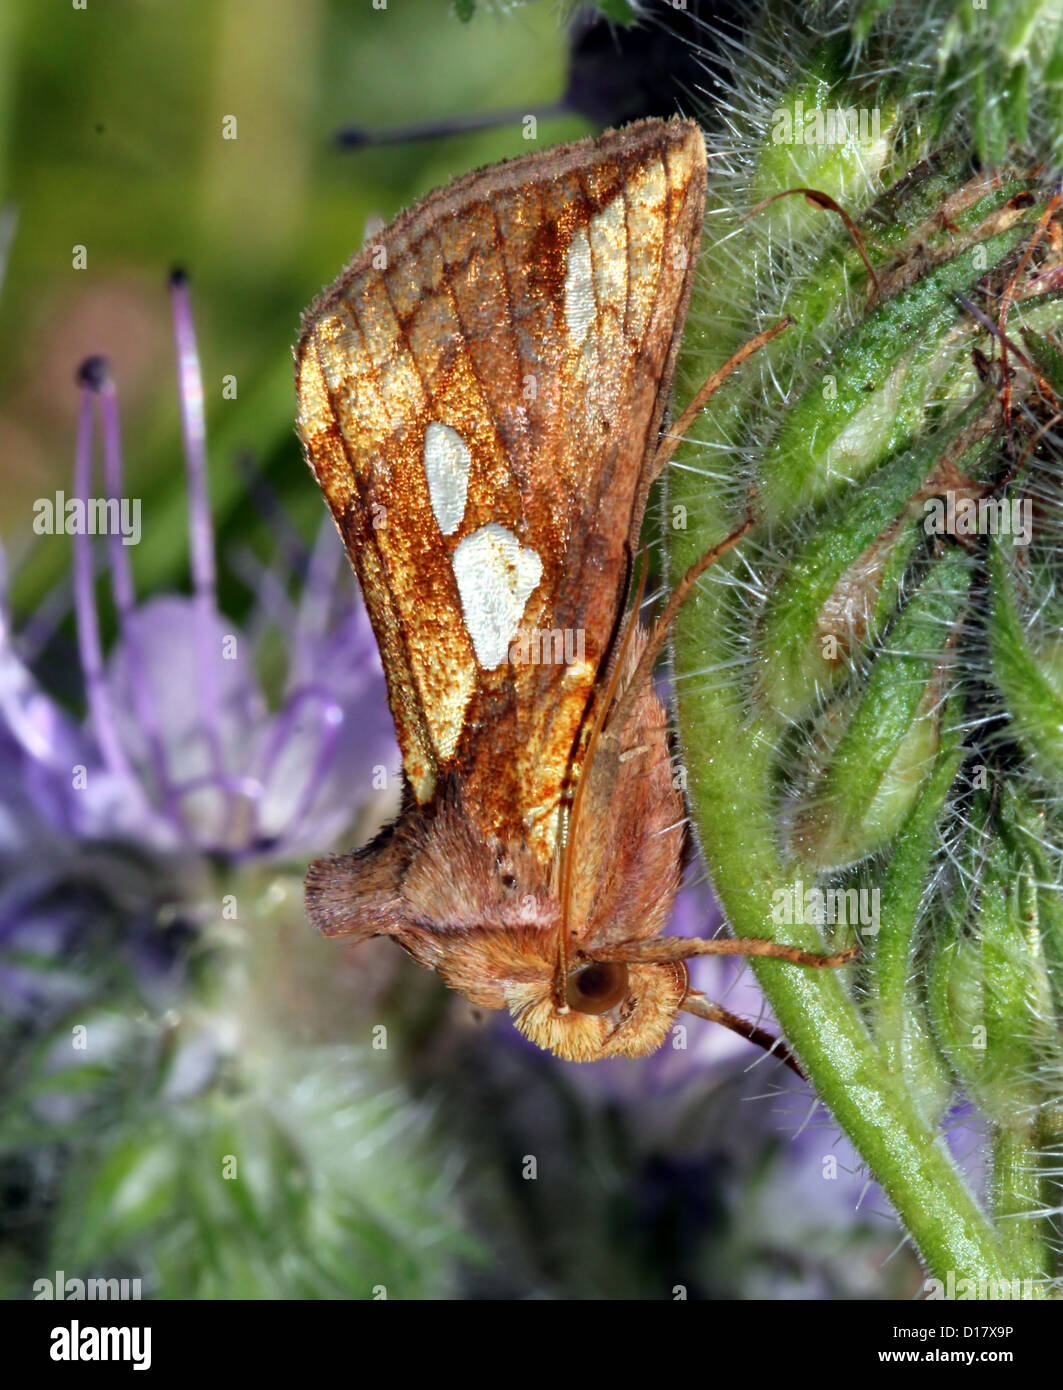 Detailed macro image of a Gold Spot-owl (Plusia festucae, an owlet moth) posing on a purple flower (phacelia or Stock Photo